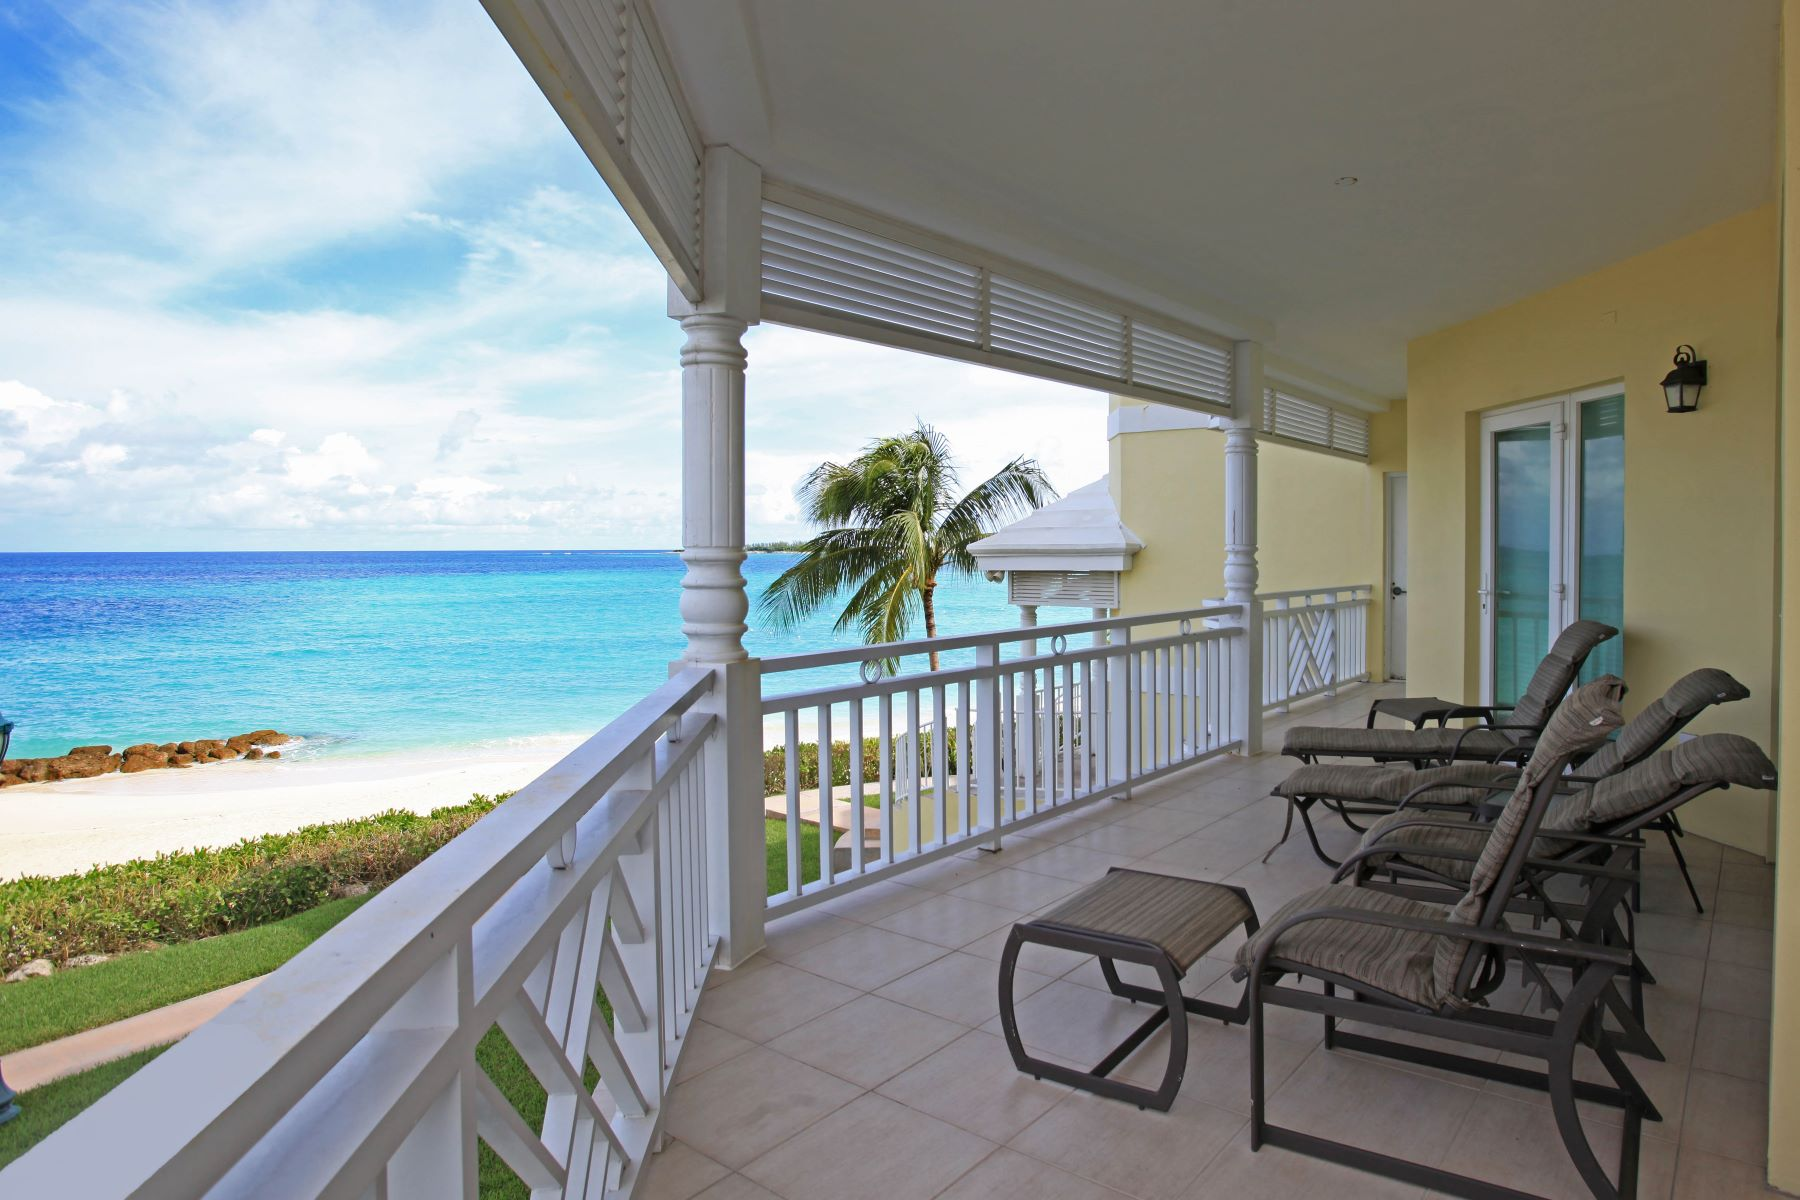 Additional photo for property listing at Bayroc Beachfront Condominium Bayroc, Cable Beach, Nassau And Paradise Island Bahamas